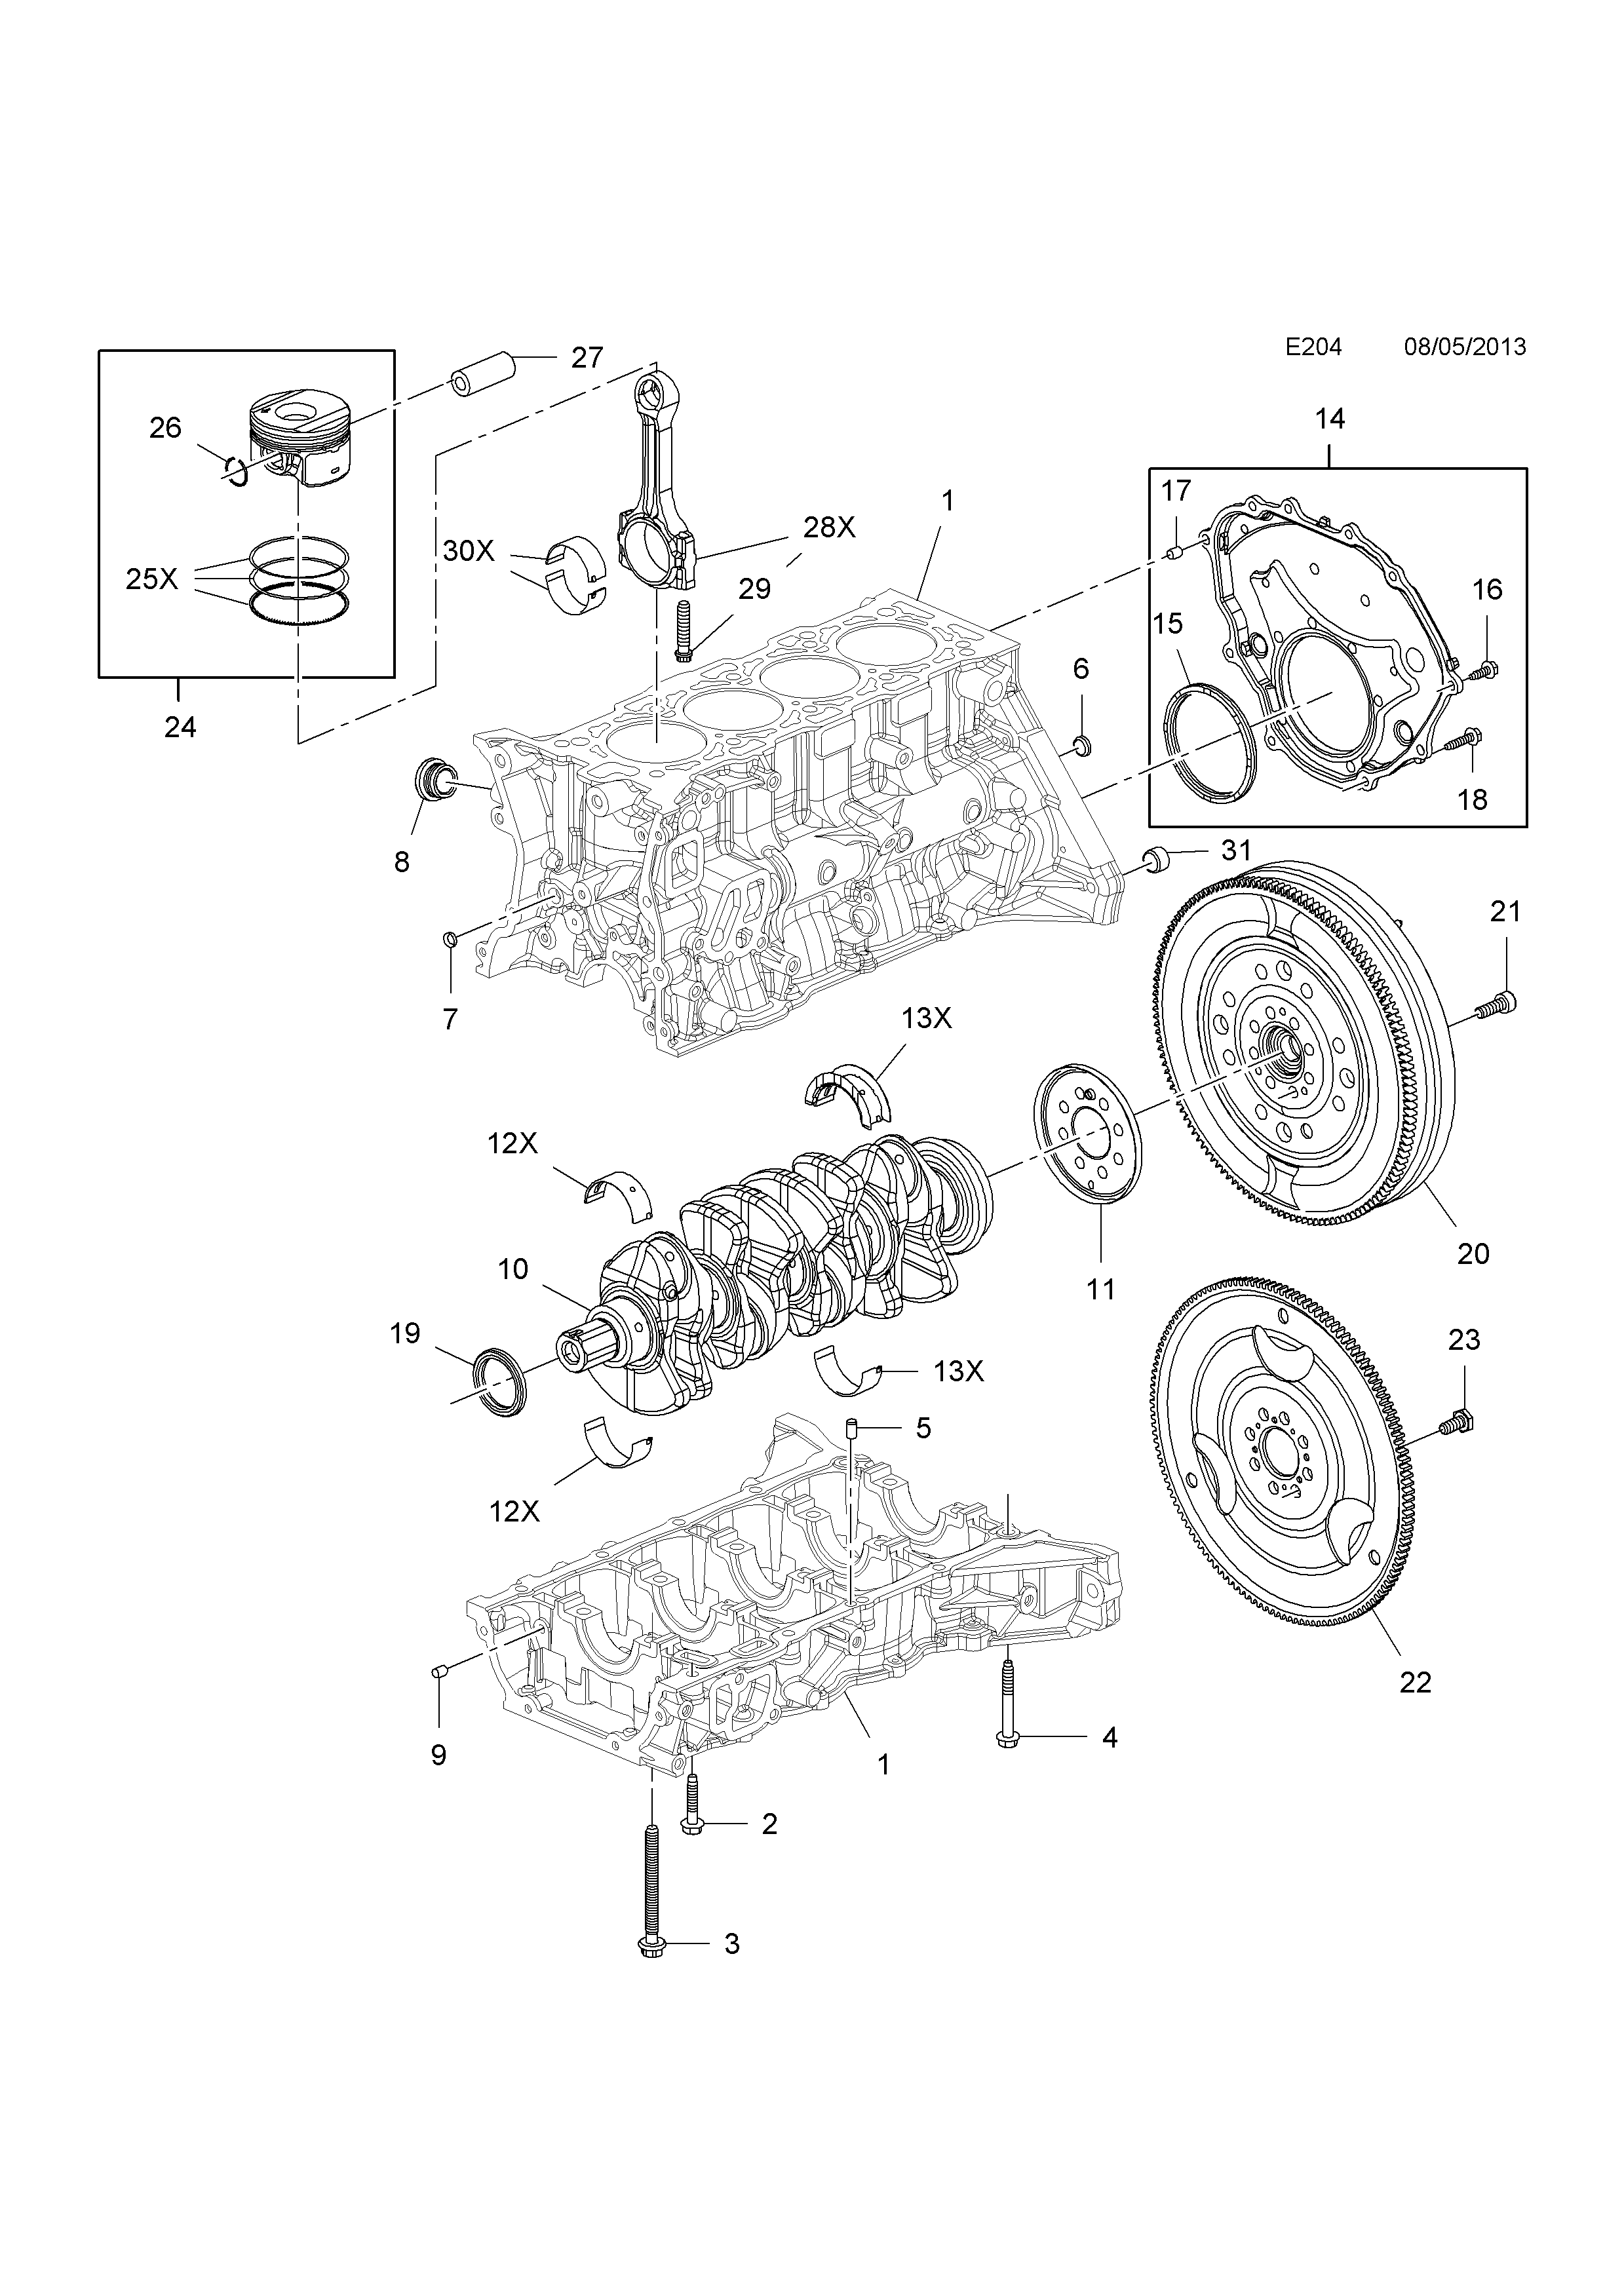 Opel zafira c 2012 e engine and clutch 2 a16xhtlvp list of parts ccuart Image collections